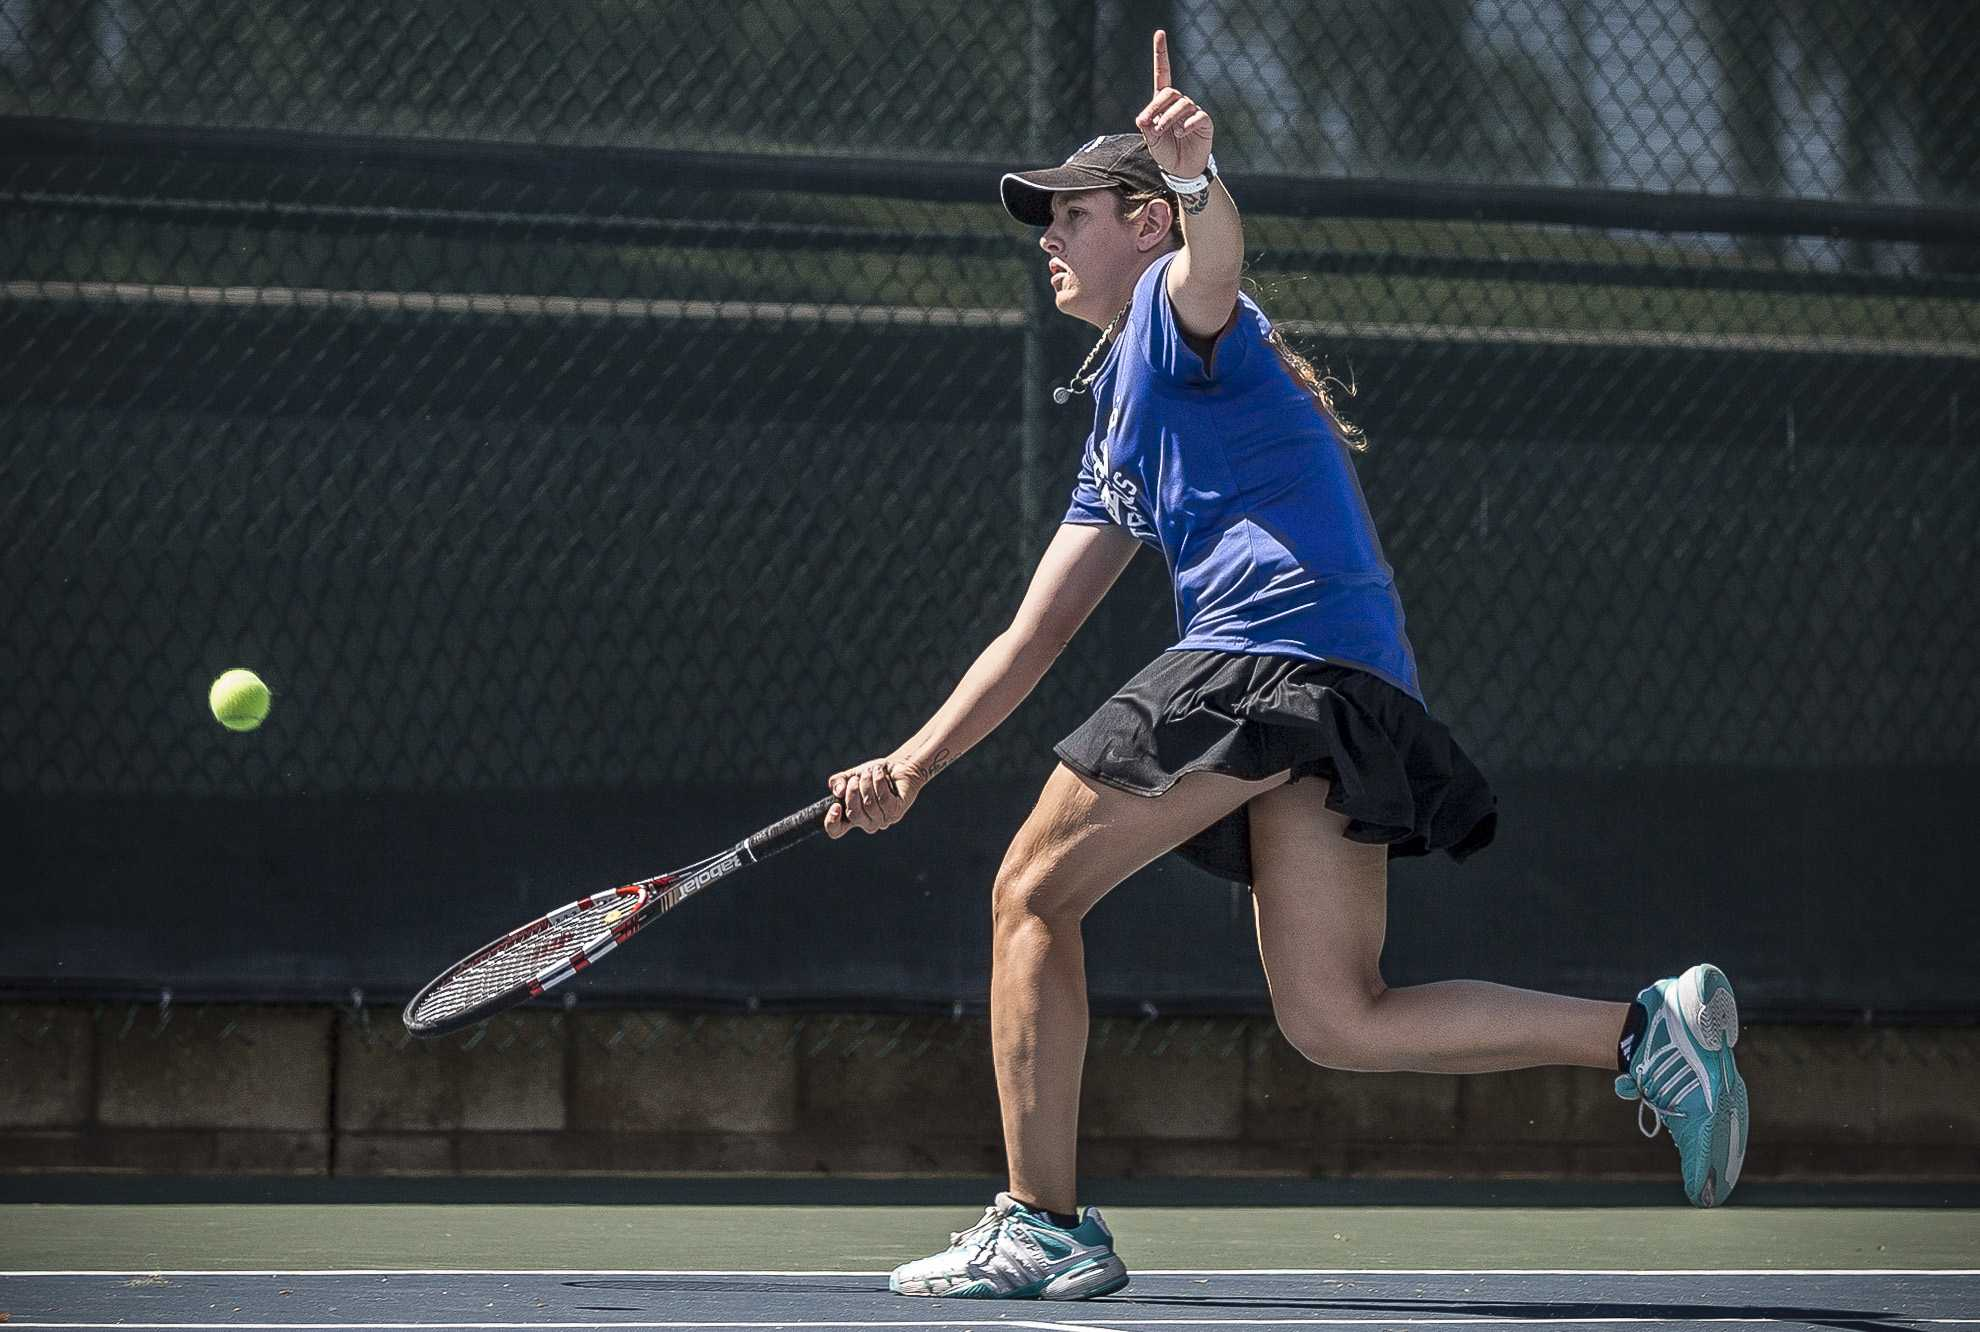 Santa Monica College Corsair sophomore Mayra Jovic (#1, singles) is about to attempt to hit a forehand shot but stops and points out that her Ventura College opponent had hit the ball out of bounds during her 2 – 0 (6-0, 6-0) set victory, which was part of the Corsairs 7 – 1 blowout over the Ventura College Pirates at the Ocean View Park Tennis Courts in Santa Monica Calif., on Thursday, March 23 2017. (Corsair Photo: Matthew Martin)